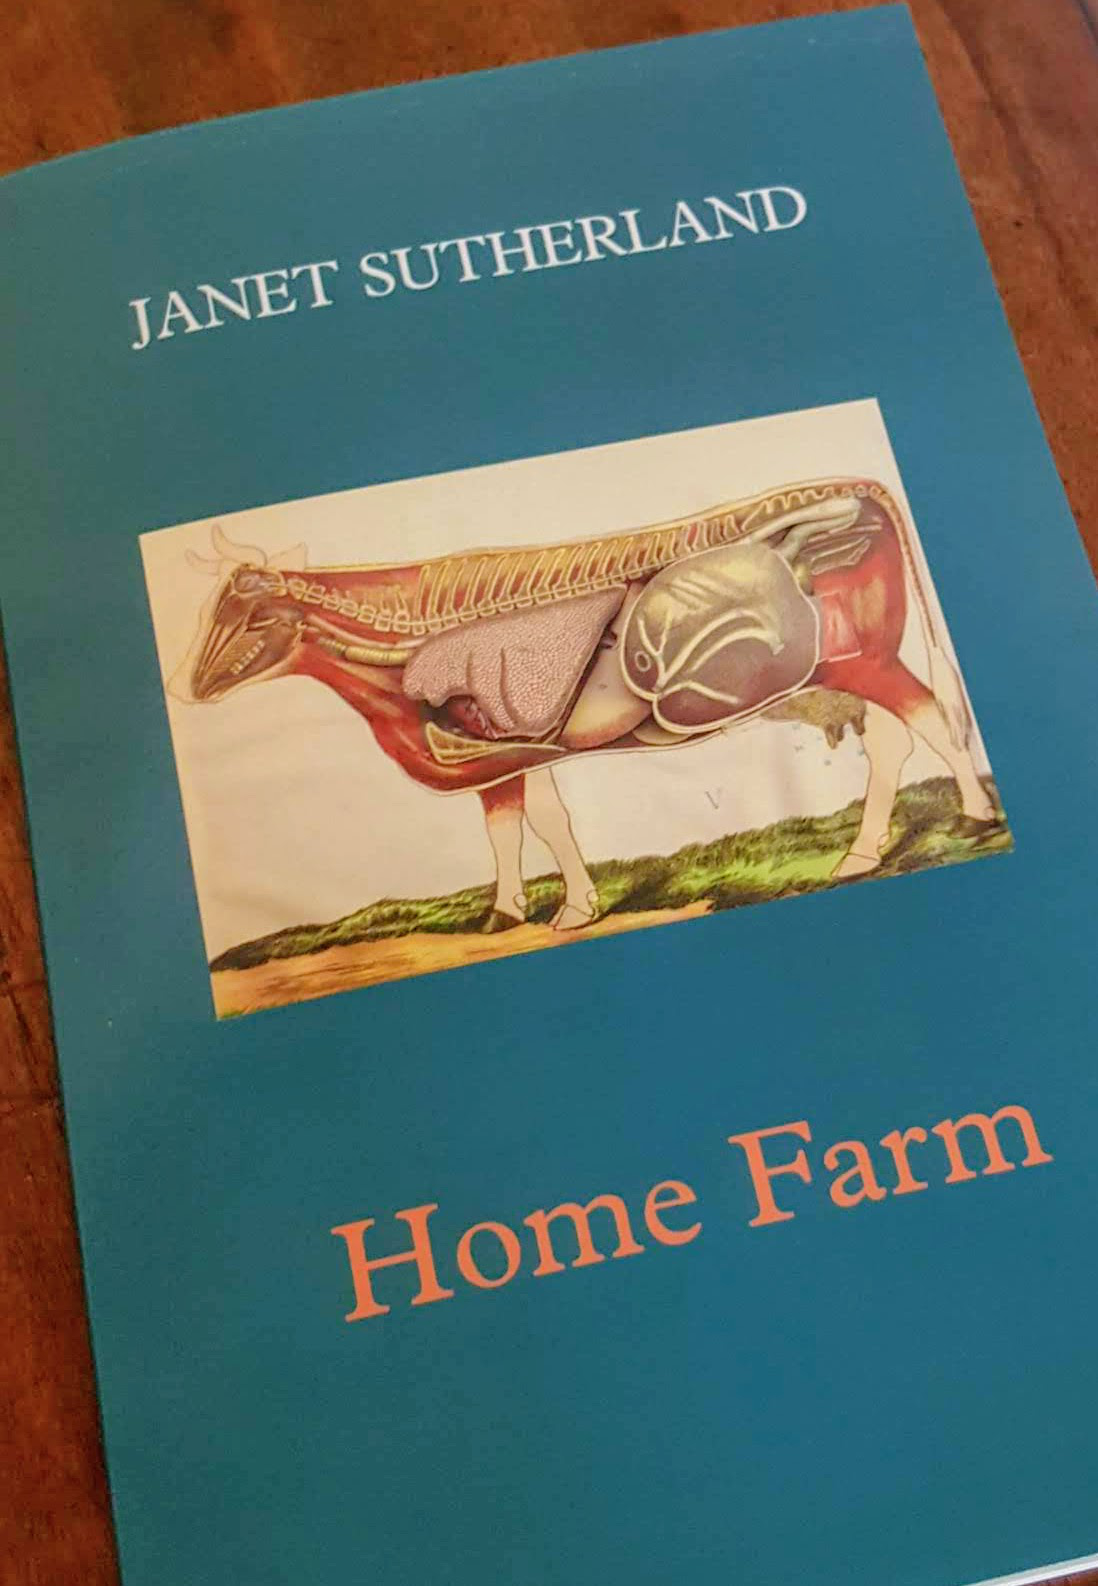 Home Farm by Janet Sutherland